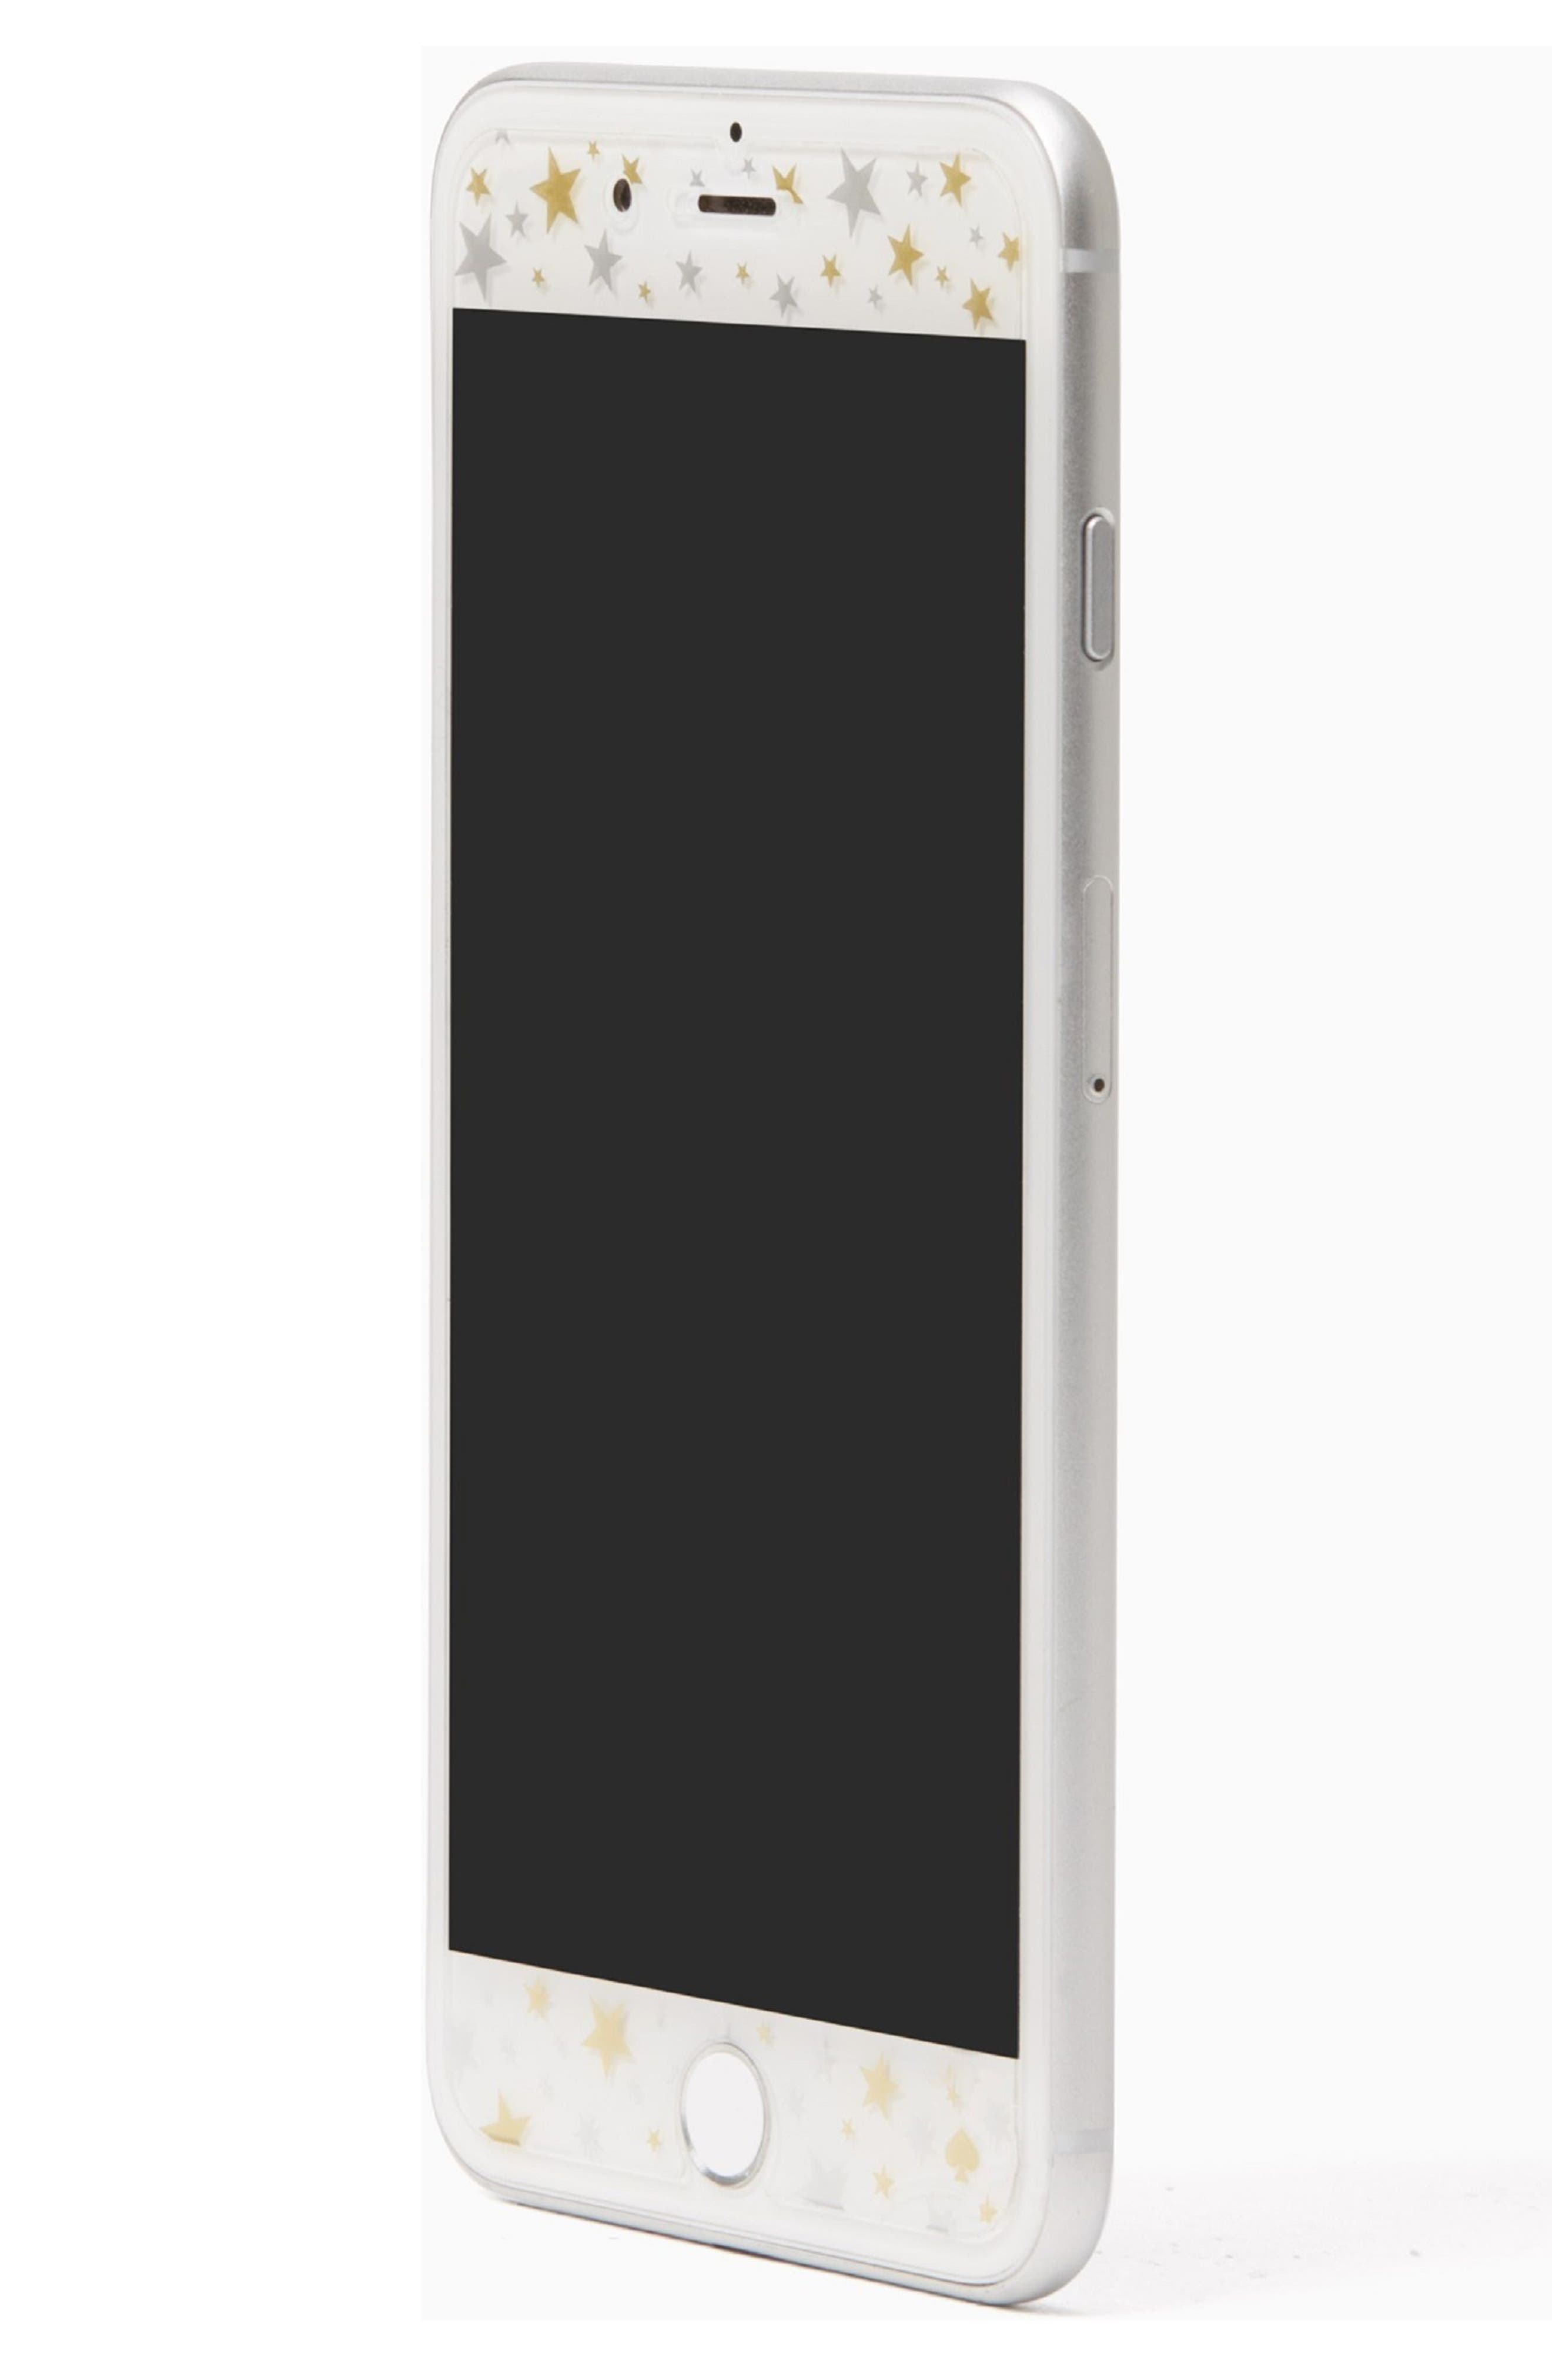 star screen cover for iPhone 7/8 & 7/8 Plus,                             Alternate thumbnail 2, color,                             710